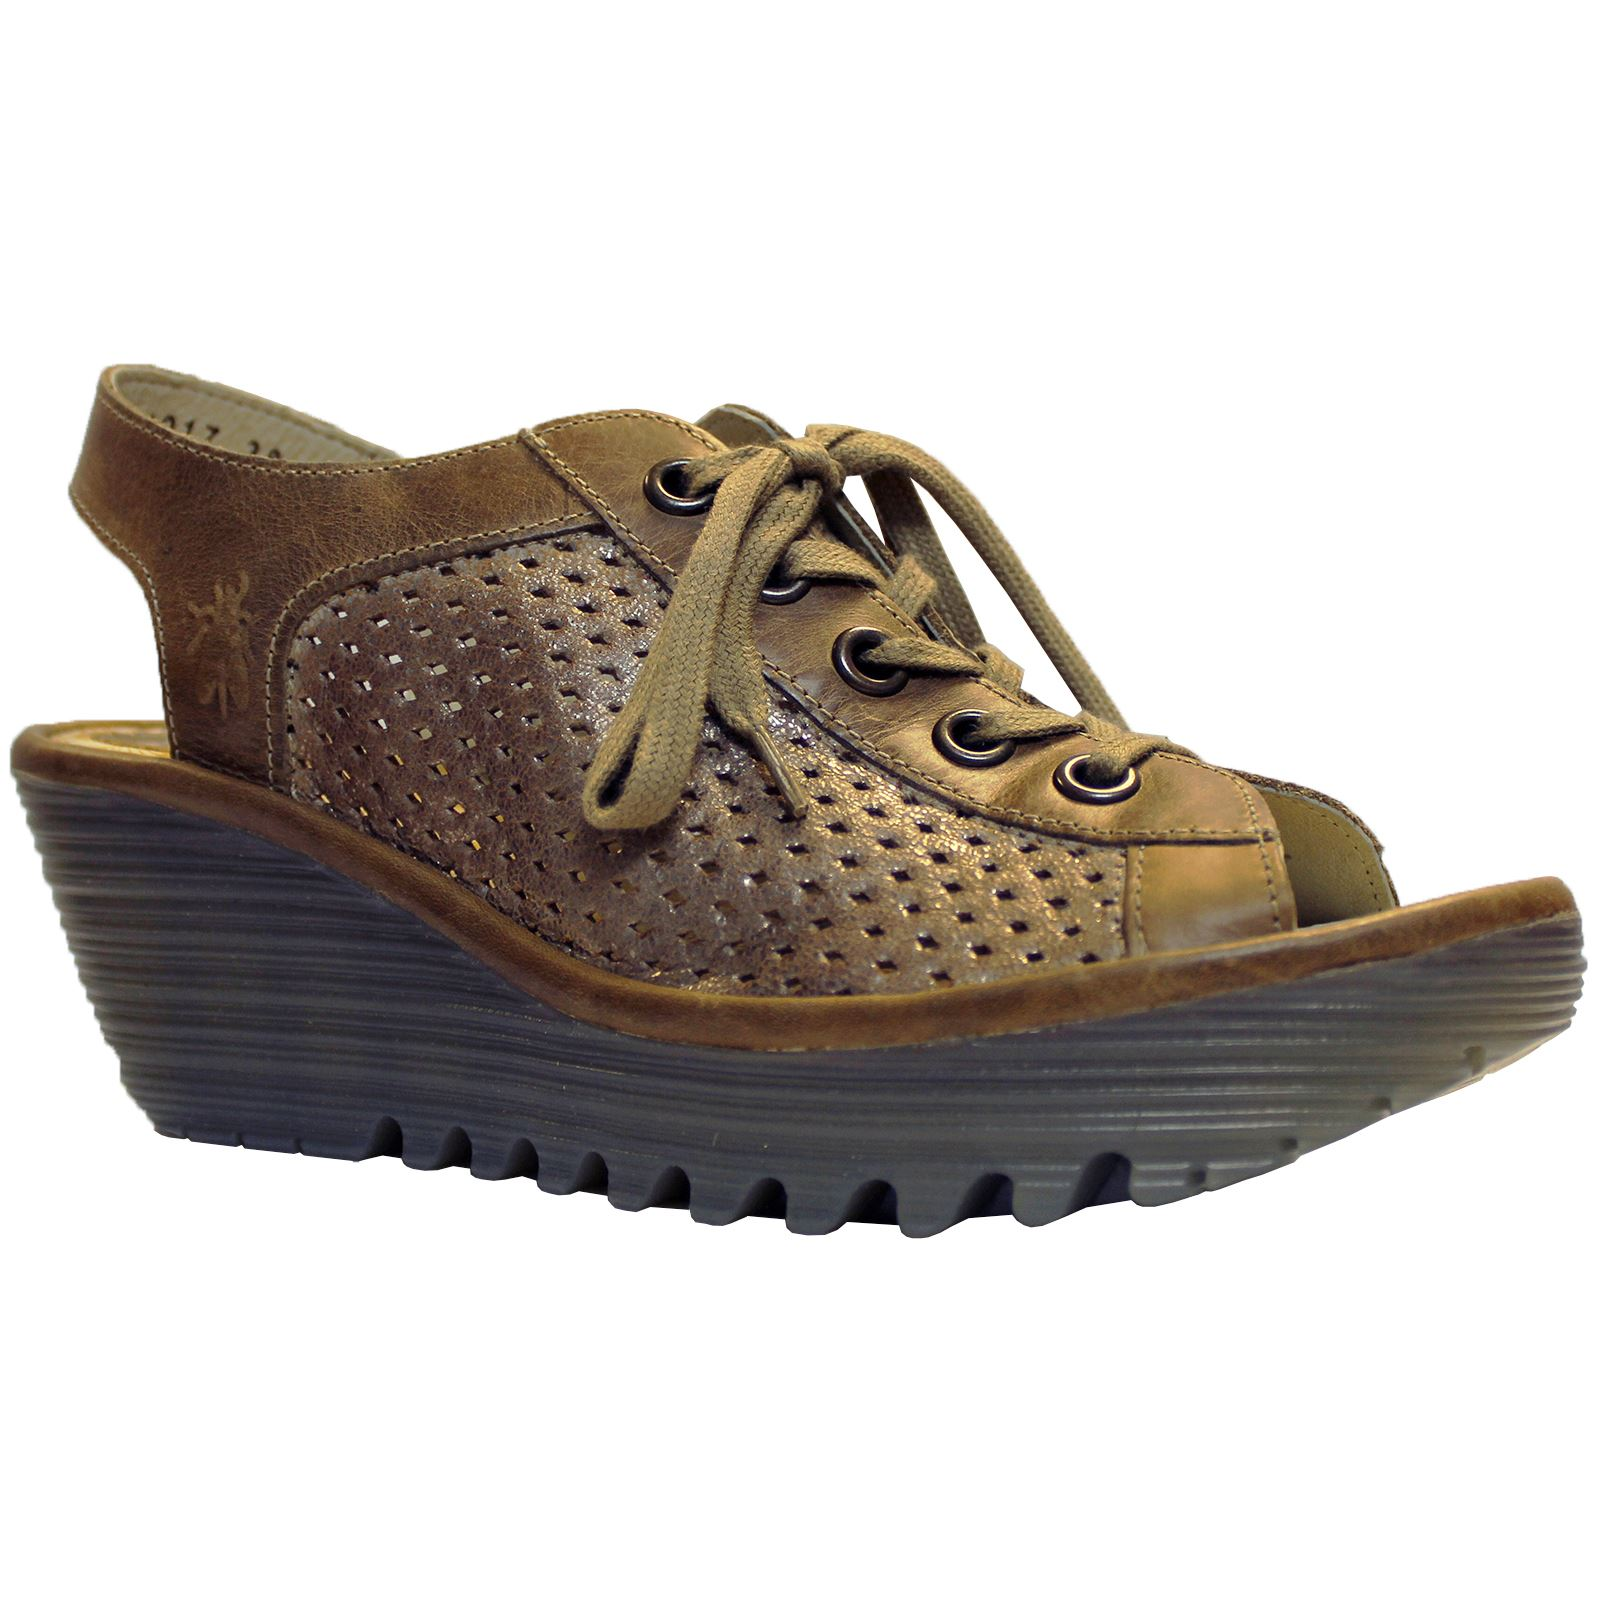 Fly London Yeki 841 Luna Camel Womens Leather Perforated Lace Up Wedge Sandals